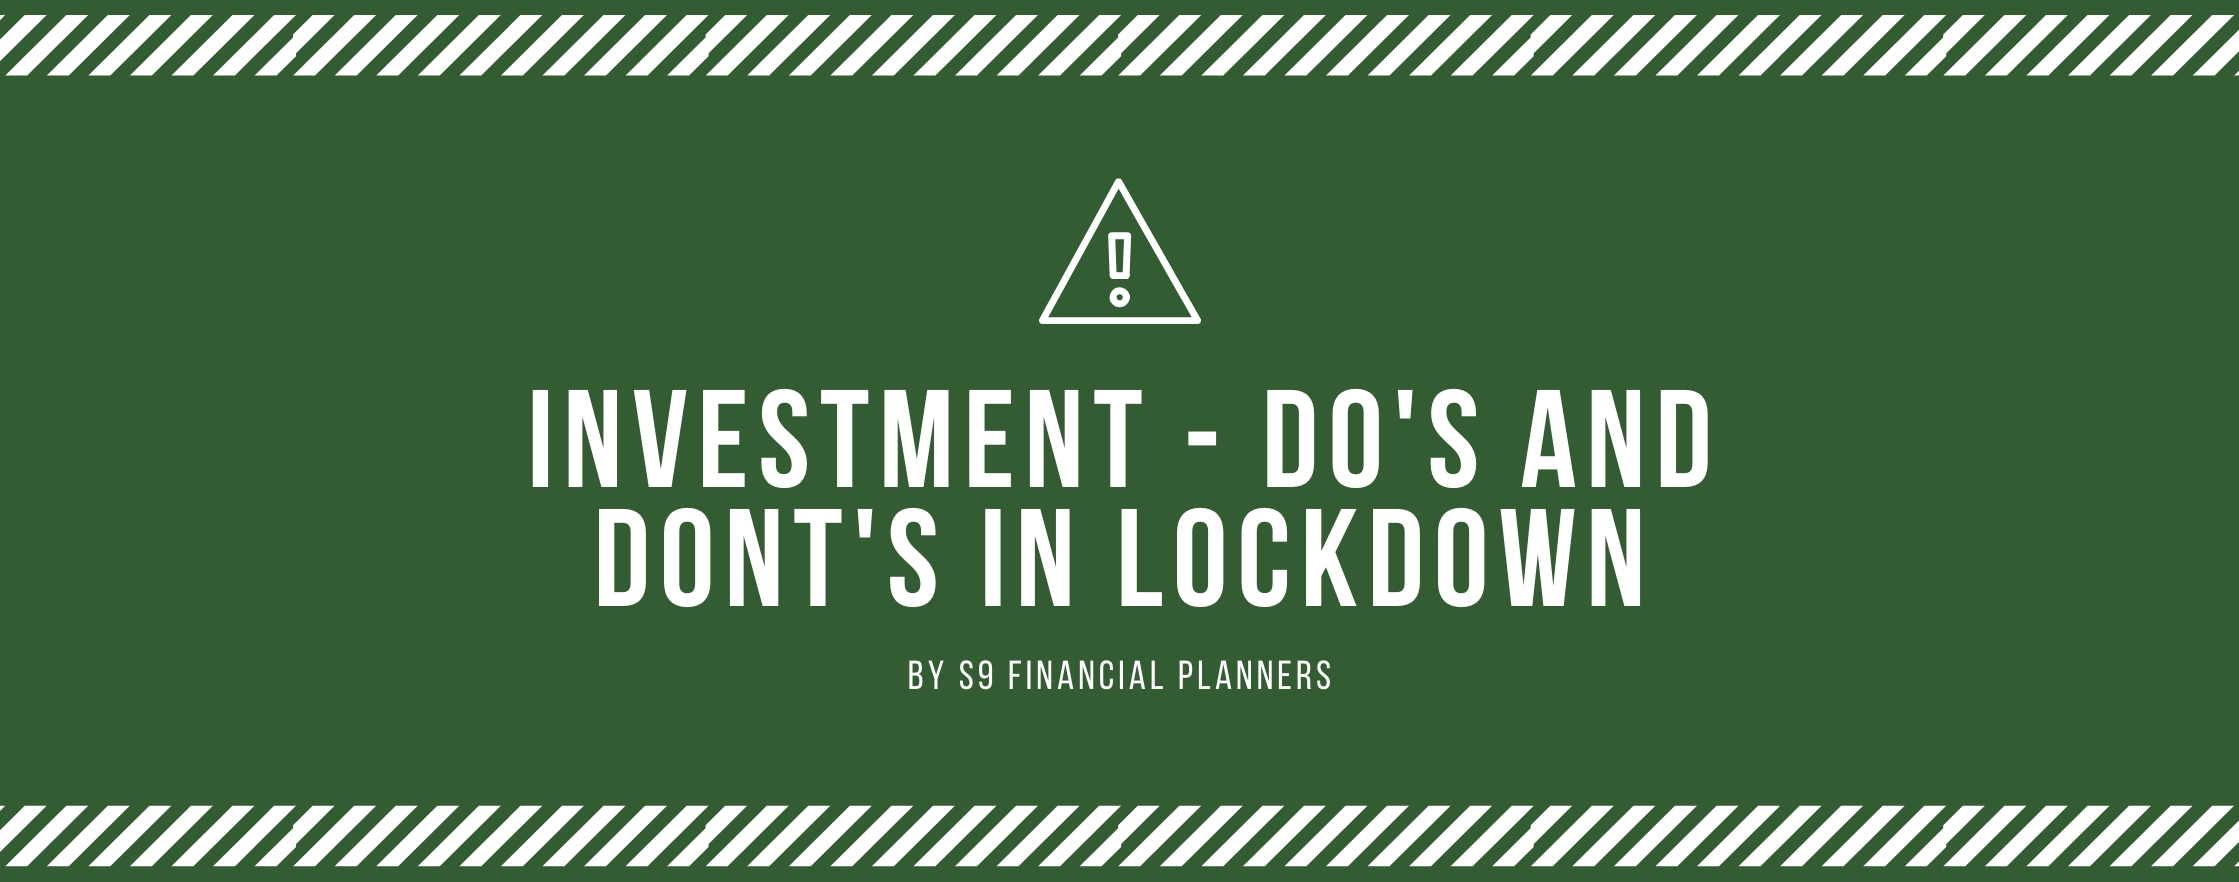 Investment-tips-in lockdown